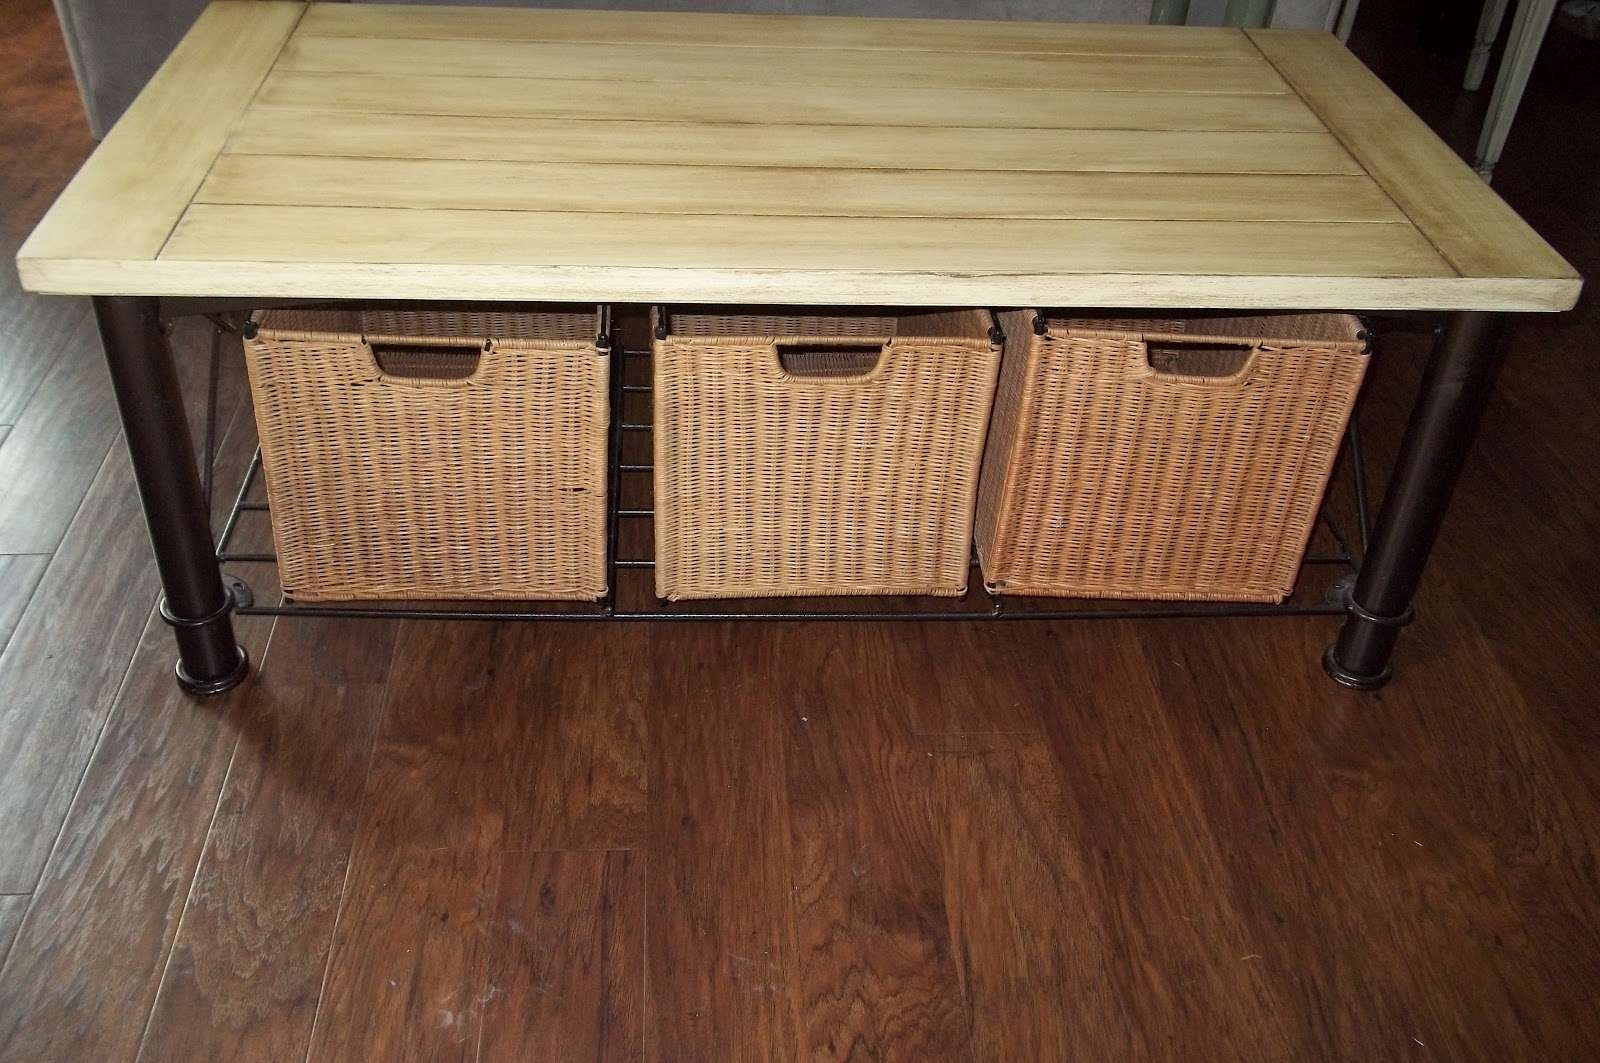 Refurbished Furniture: Cream Coffee Table With Wicker Baskets With Most Current Coffee Table With Wicker Basket Storage (View 15 of 20)